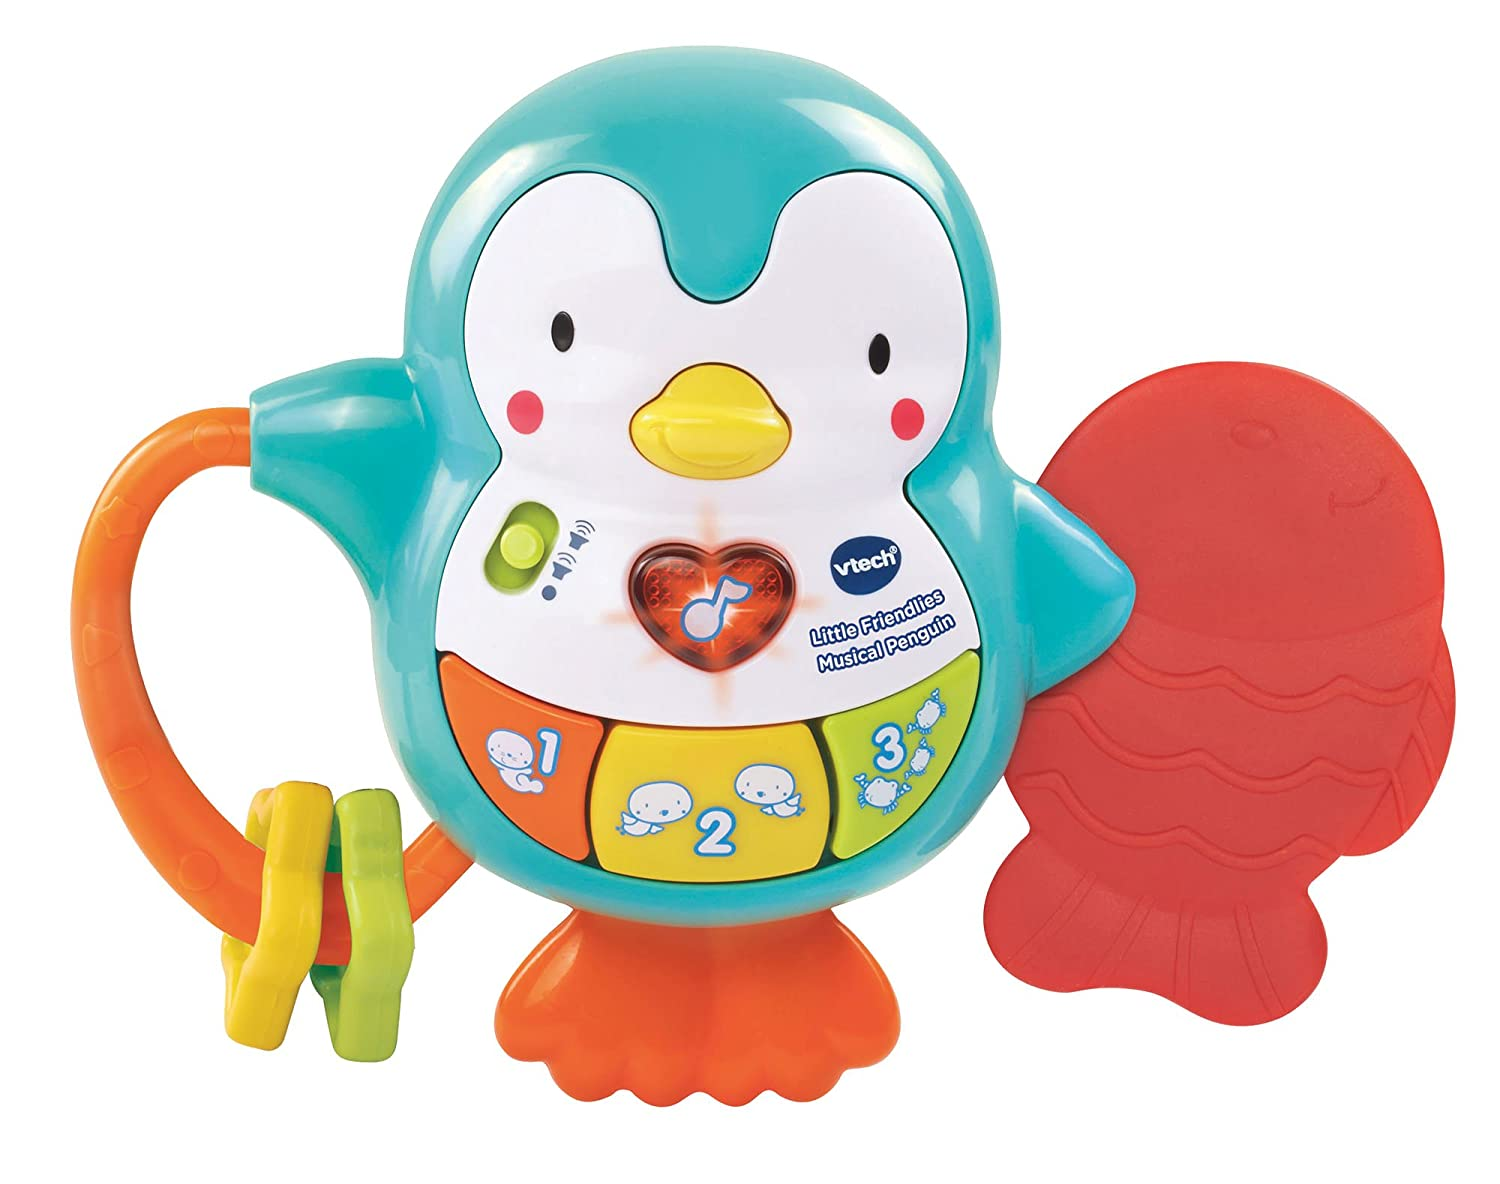 d02a1132dd Vtech Baby Little Friendlies Musical Penguin Baby Toy, Rattle and Teether,  Educational Musical and Sensory Toy, Cot and Pram Toy Suitable for 3 6 and  ...